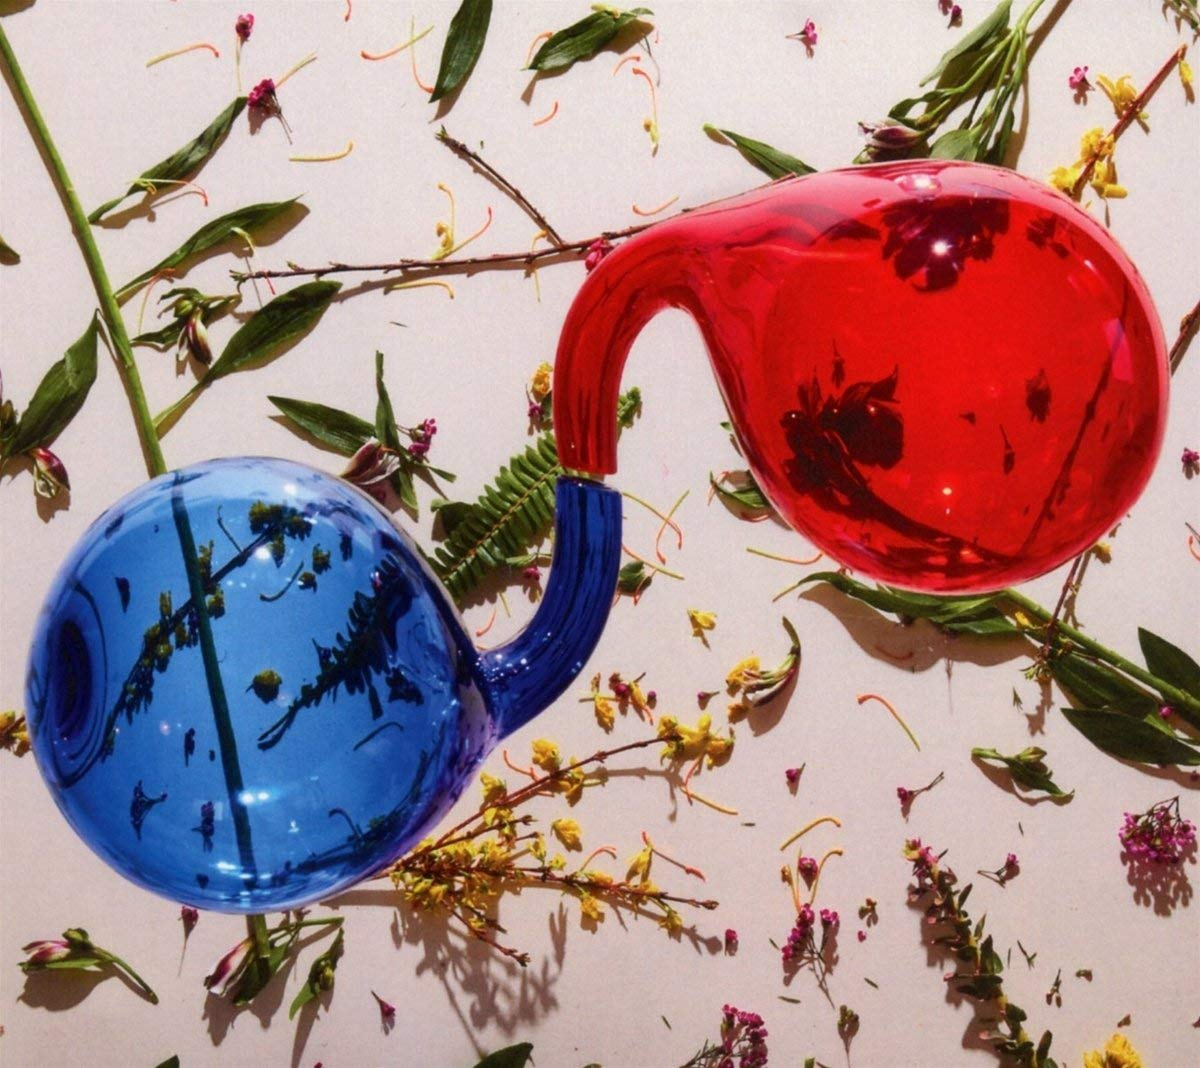 Dirty Projectors - Lamp Lit Prose [Indie Exclusive Limited Edition LP]